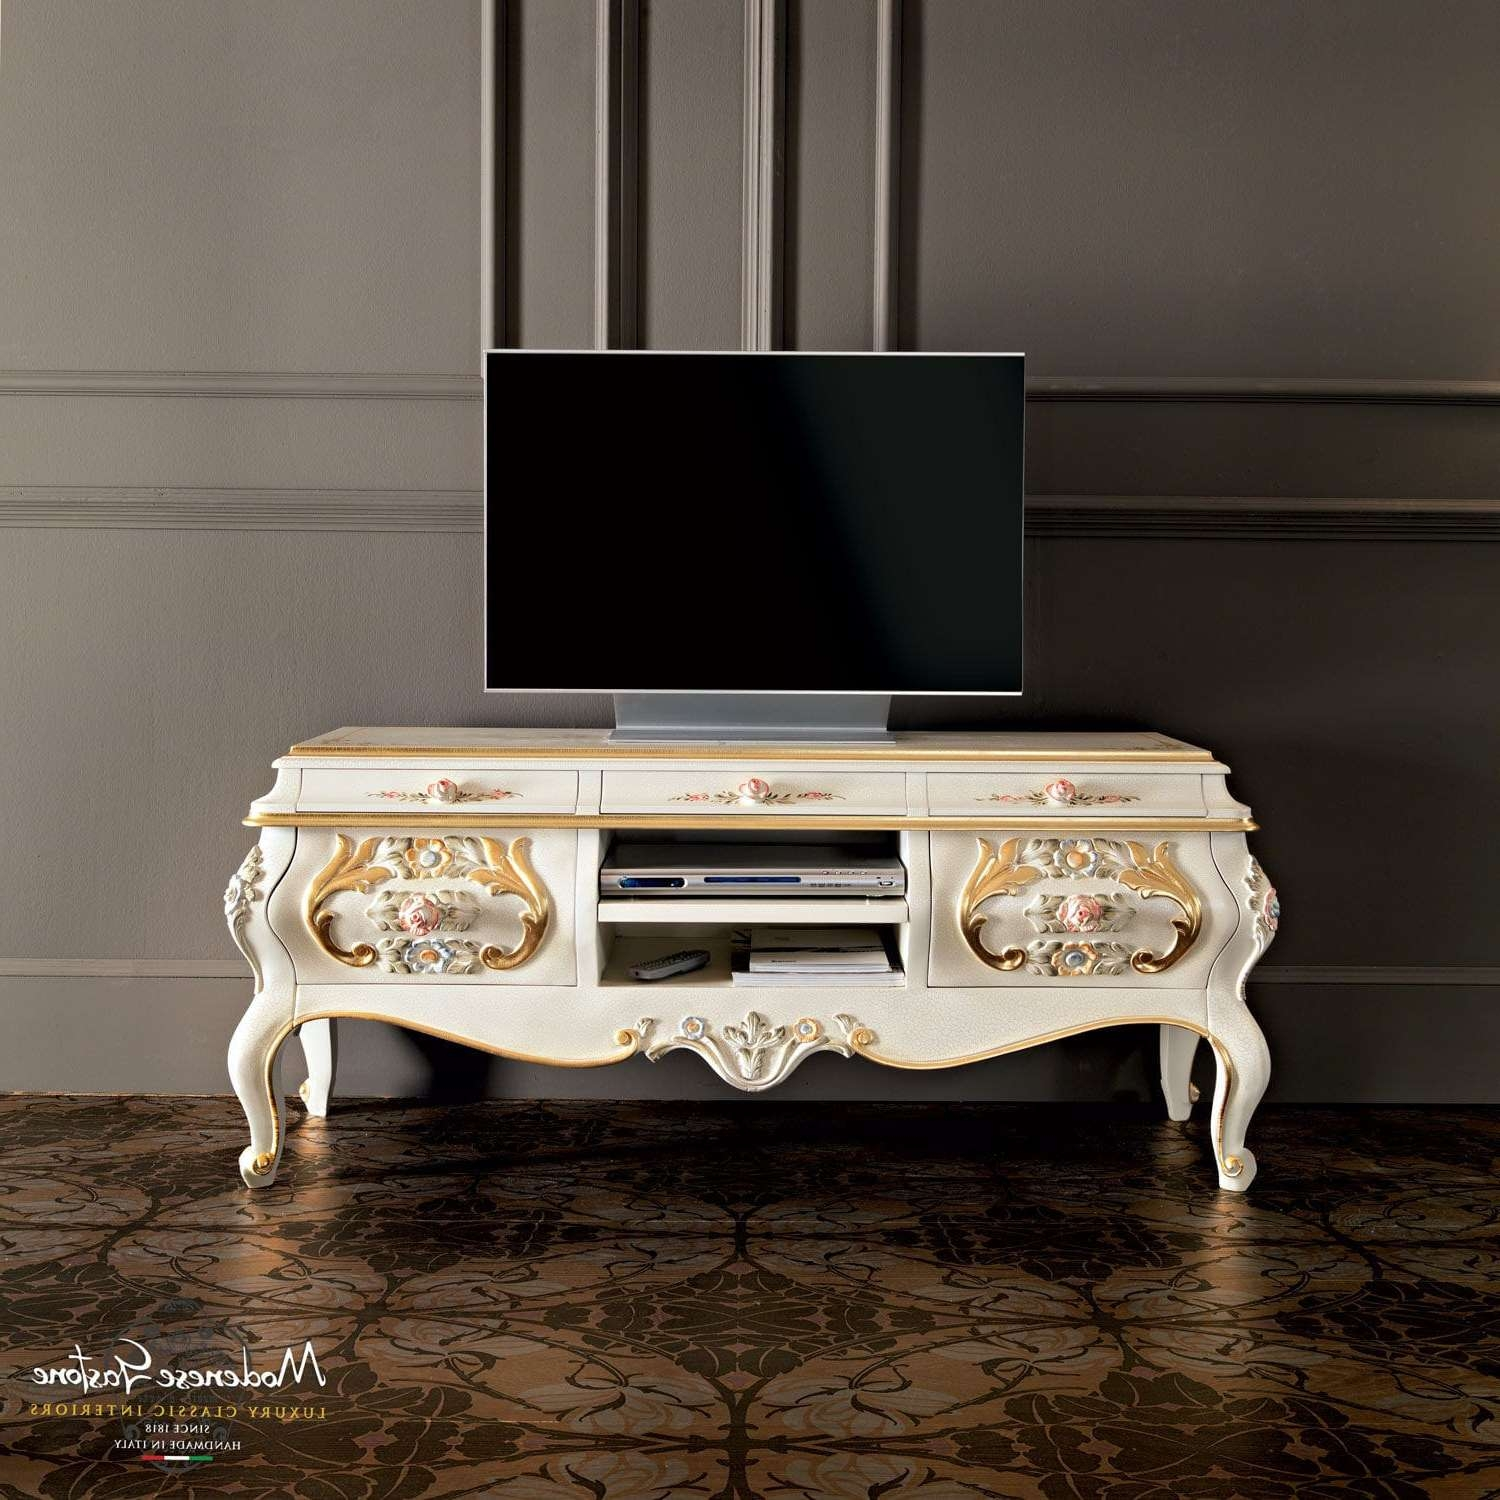 Classic Tv Cabinet / Wooden – Villa Venezia: 11105 – Modenese With Regard To Gold Tv Cabinets (View 14 of 20)